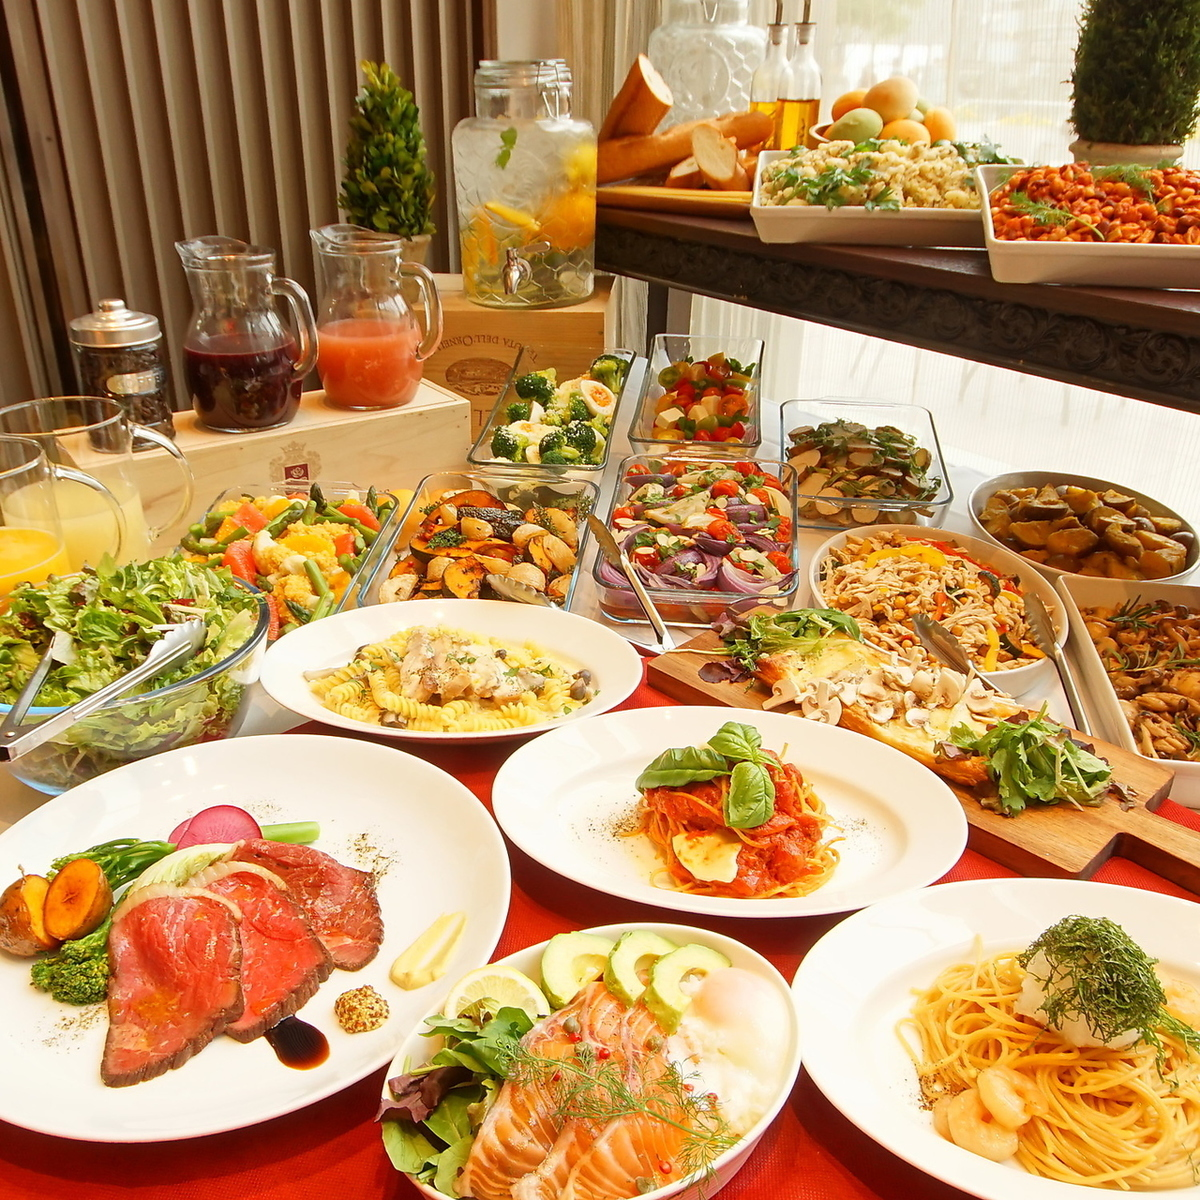 【Weekday lunch】 The main choice can be changed every other week! Please have lunch with seasonal ingredients!